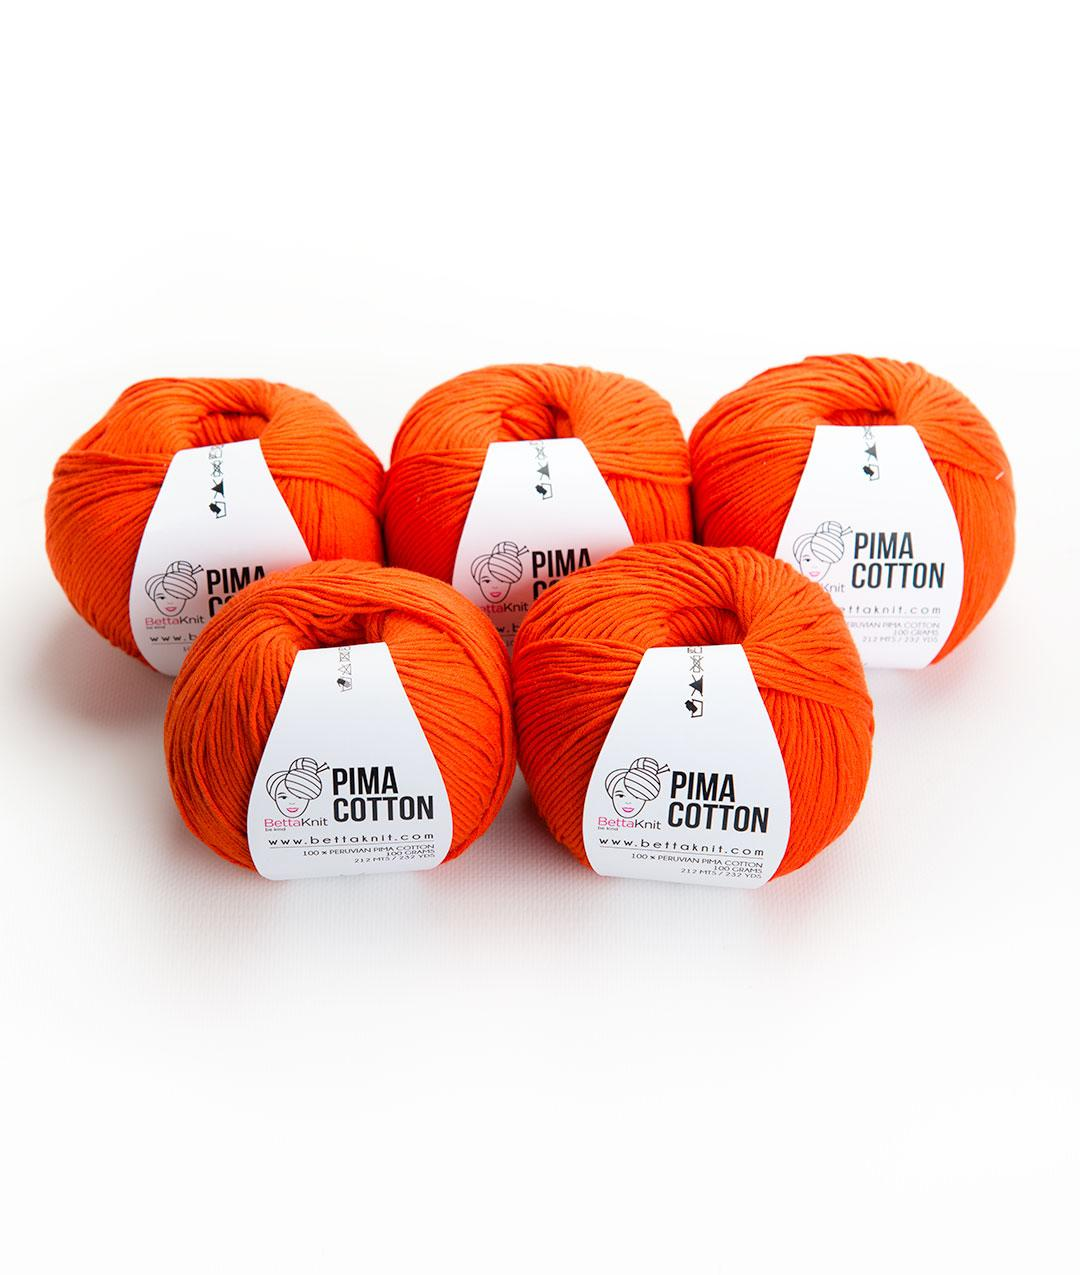 Yarn boxes without Needles  - Pack of YarnYarn boxes without Needles  - Pack of Yarn - Pima Cotton Pack - 5 balls - 1